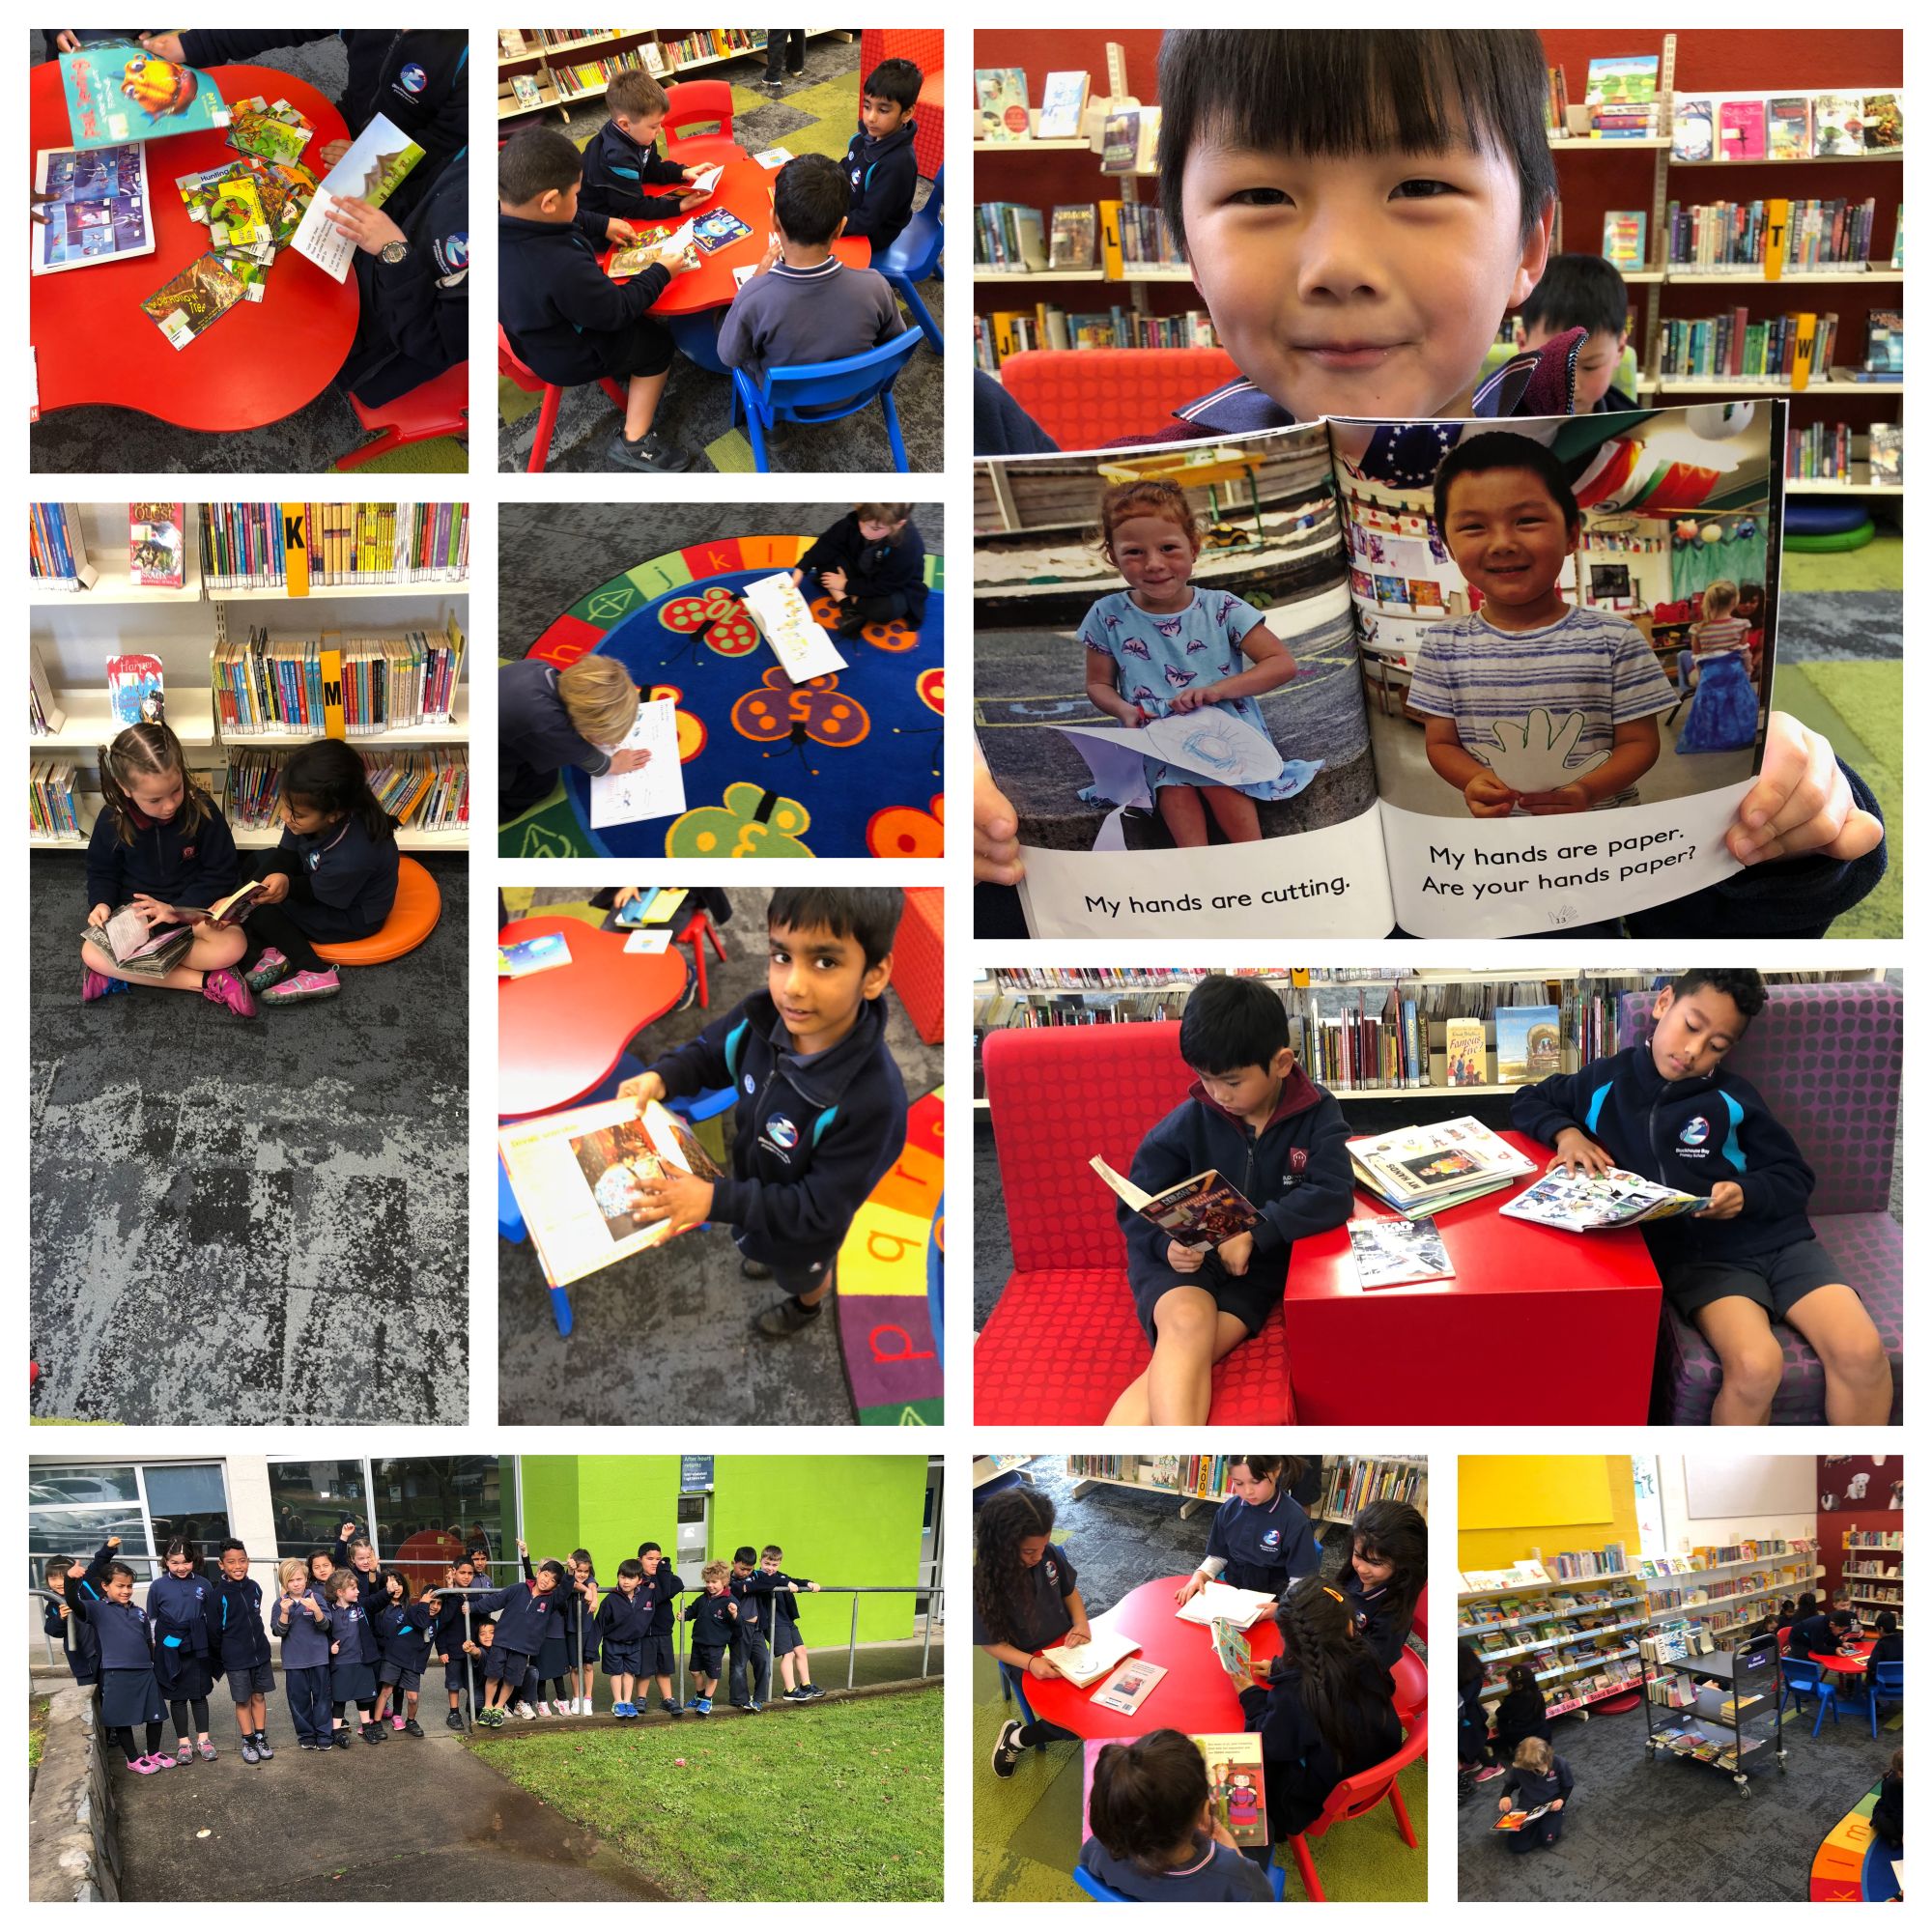 Blockhouse Bay Primary School - Our Visit to the Blockhouse Bay Library